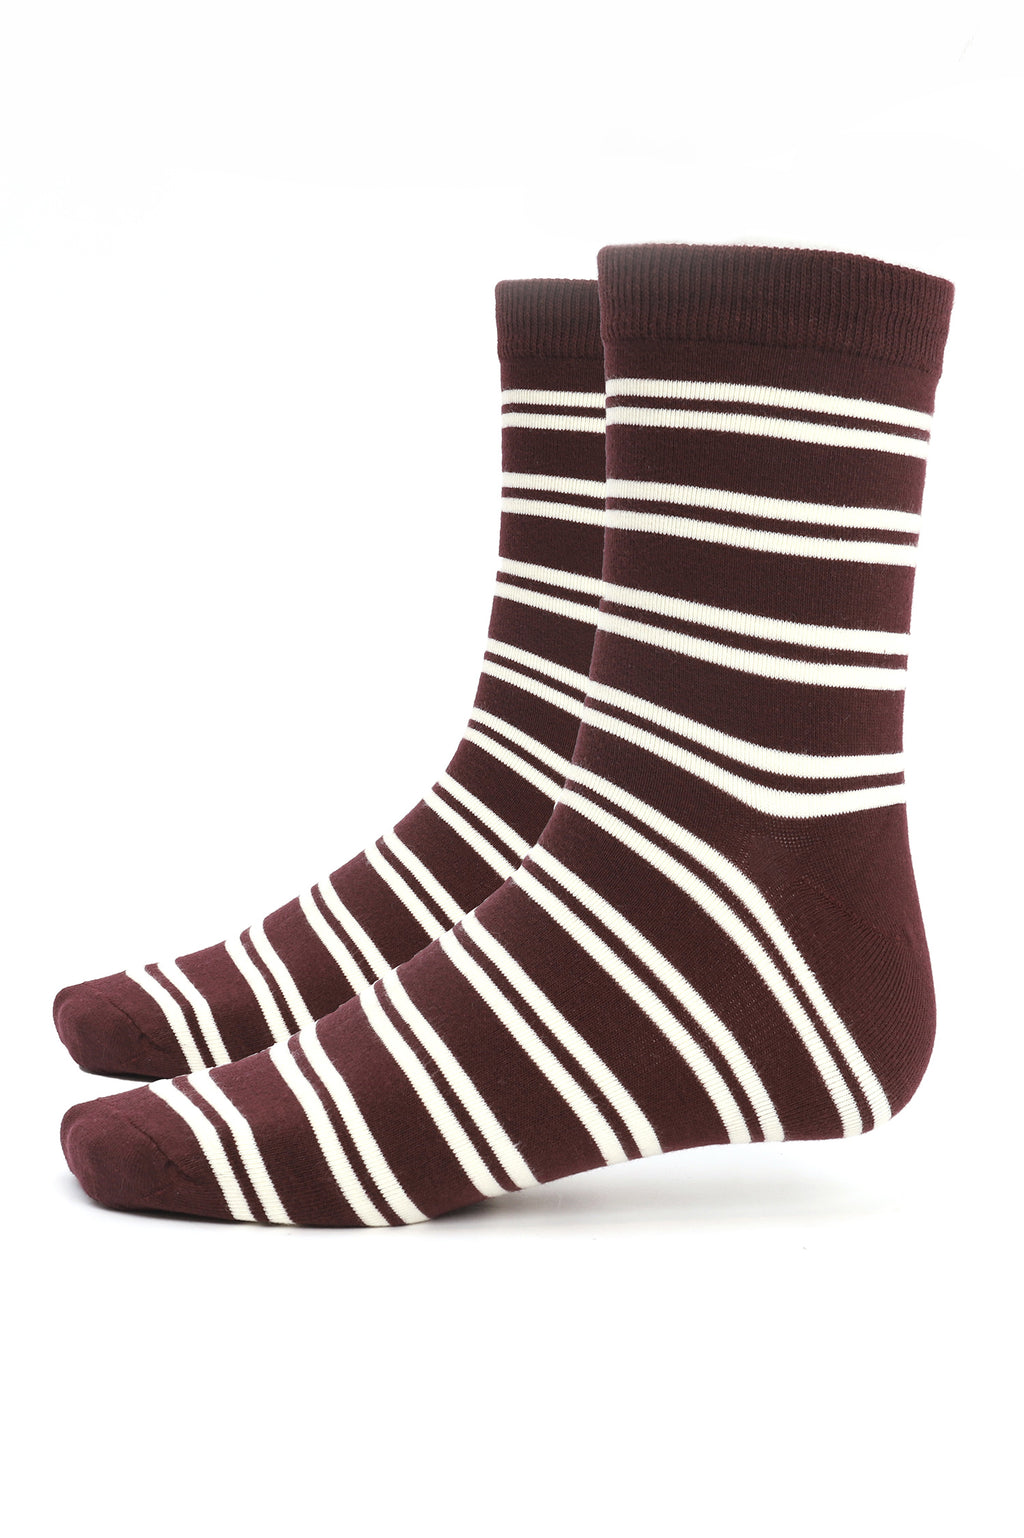 STRIPED SOCKS-RED-WHITE